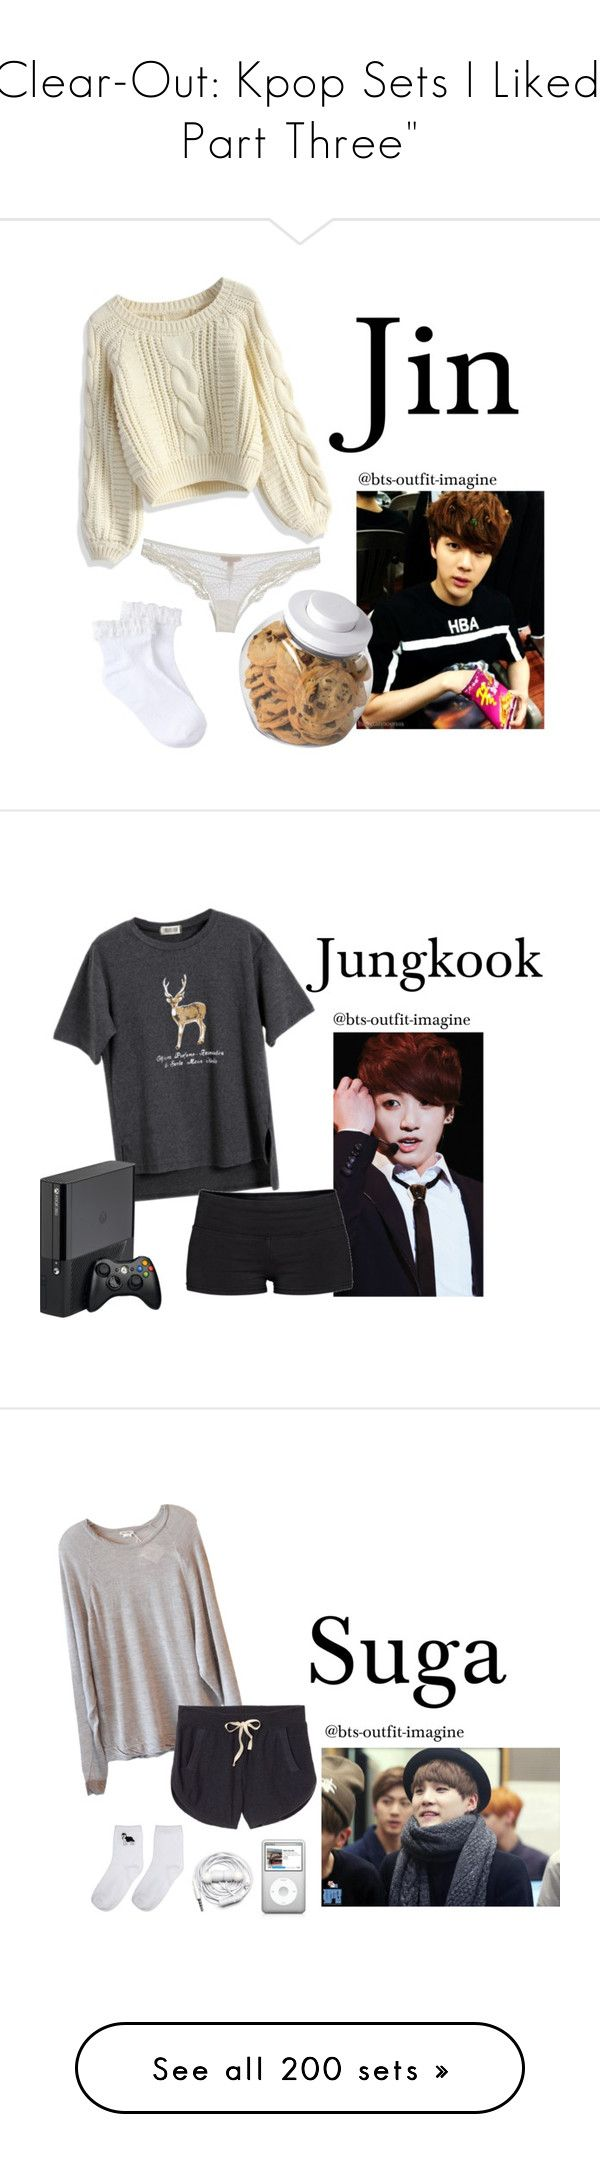 """""""Clear-Out: Kpop Sets I Liked   Part Three"""" by living-in-luxury ❤ liked on Polyvore featuring art, simple, kpop, korean, bts, jin, jungkook, Suga, rapmonster and jimin"""